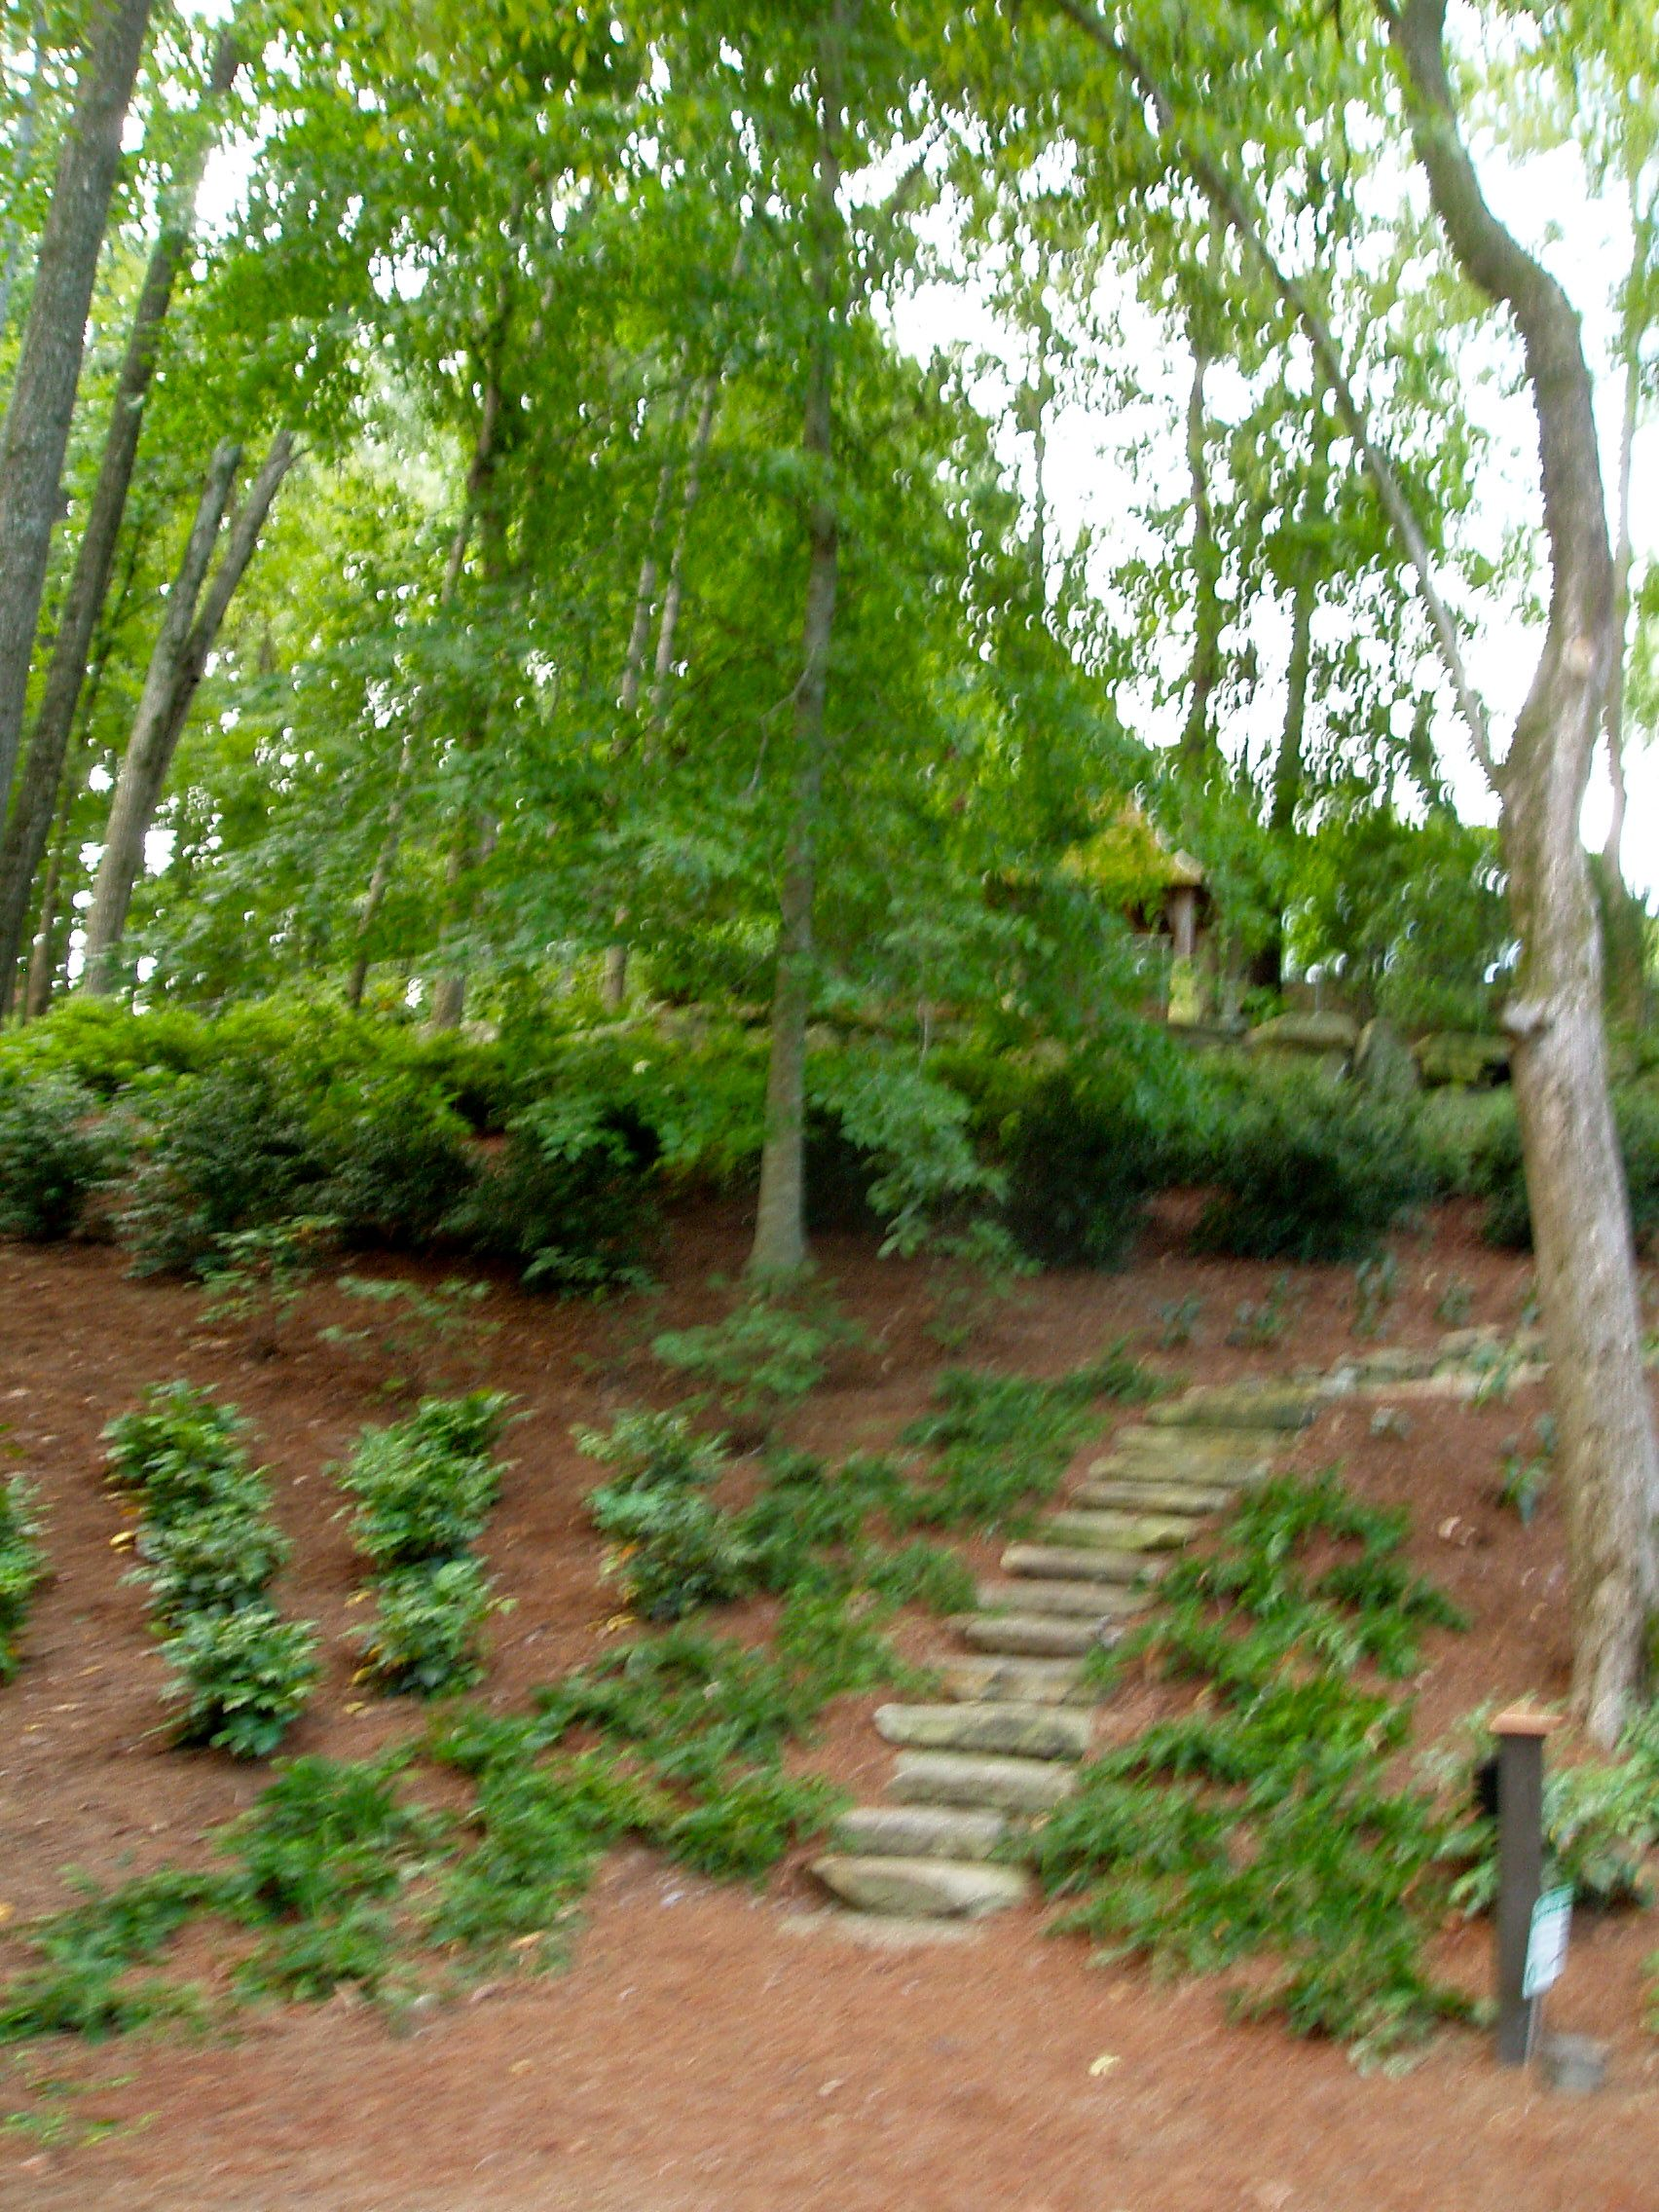 Additional landscaping at the site.